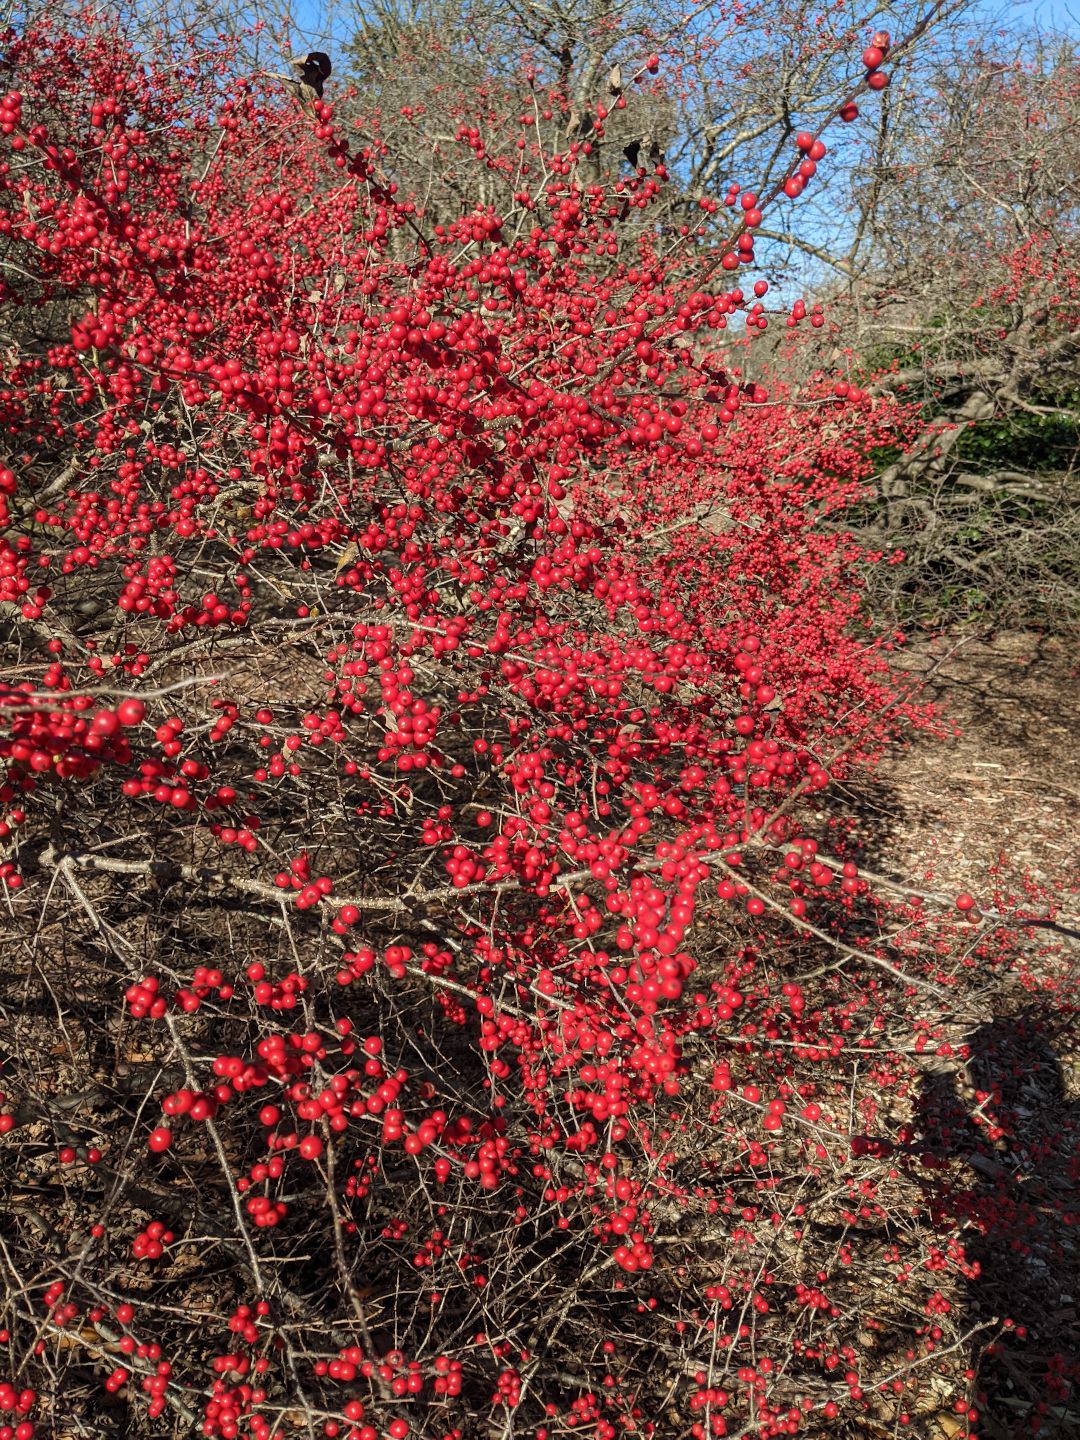 Winterberry hollies